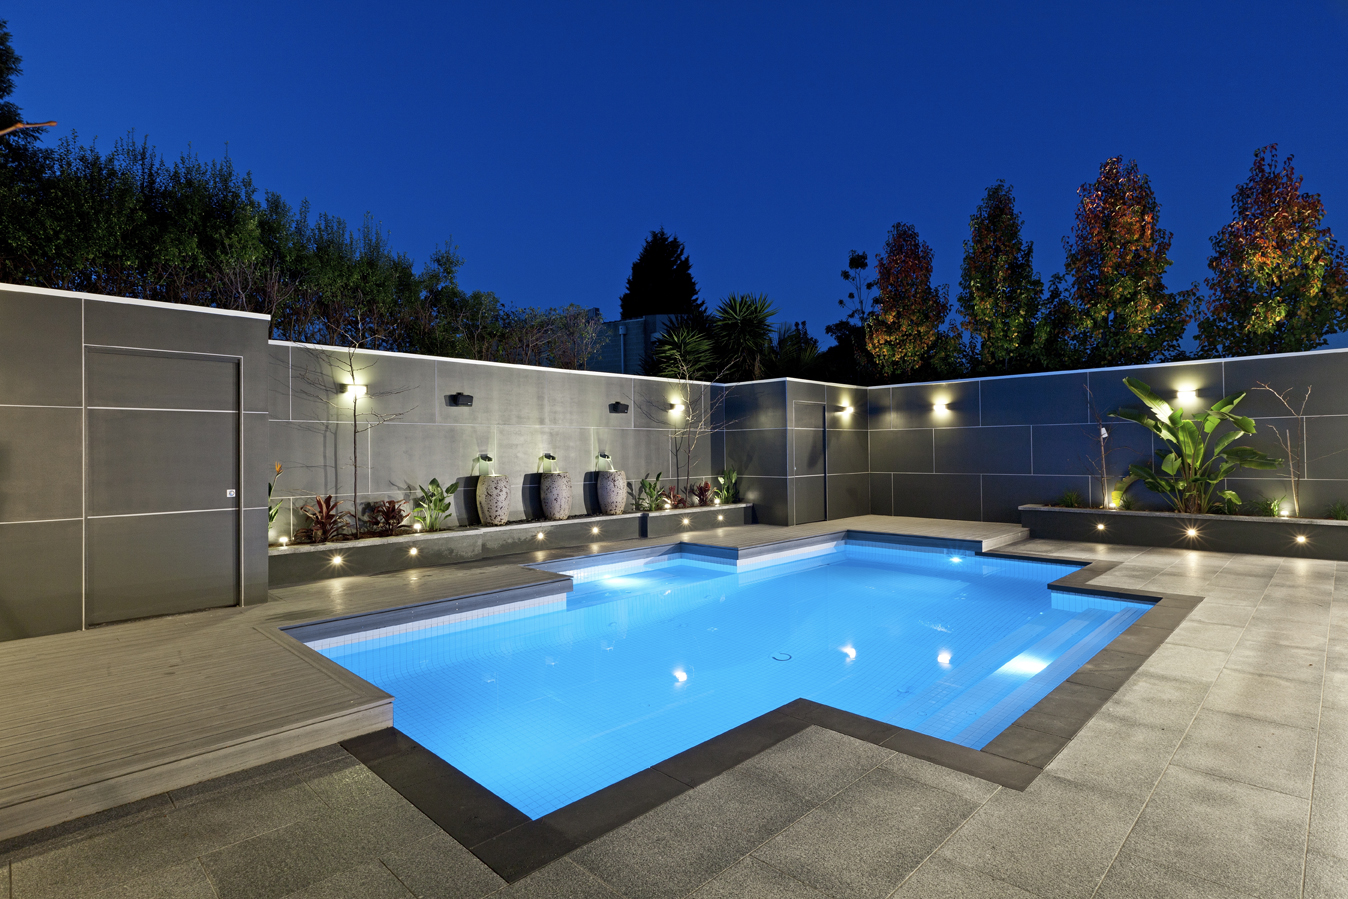 Backyard landscaping ideas swimming pool design for Design my pool